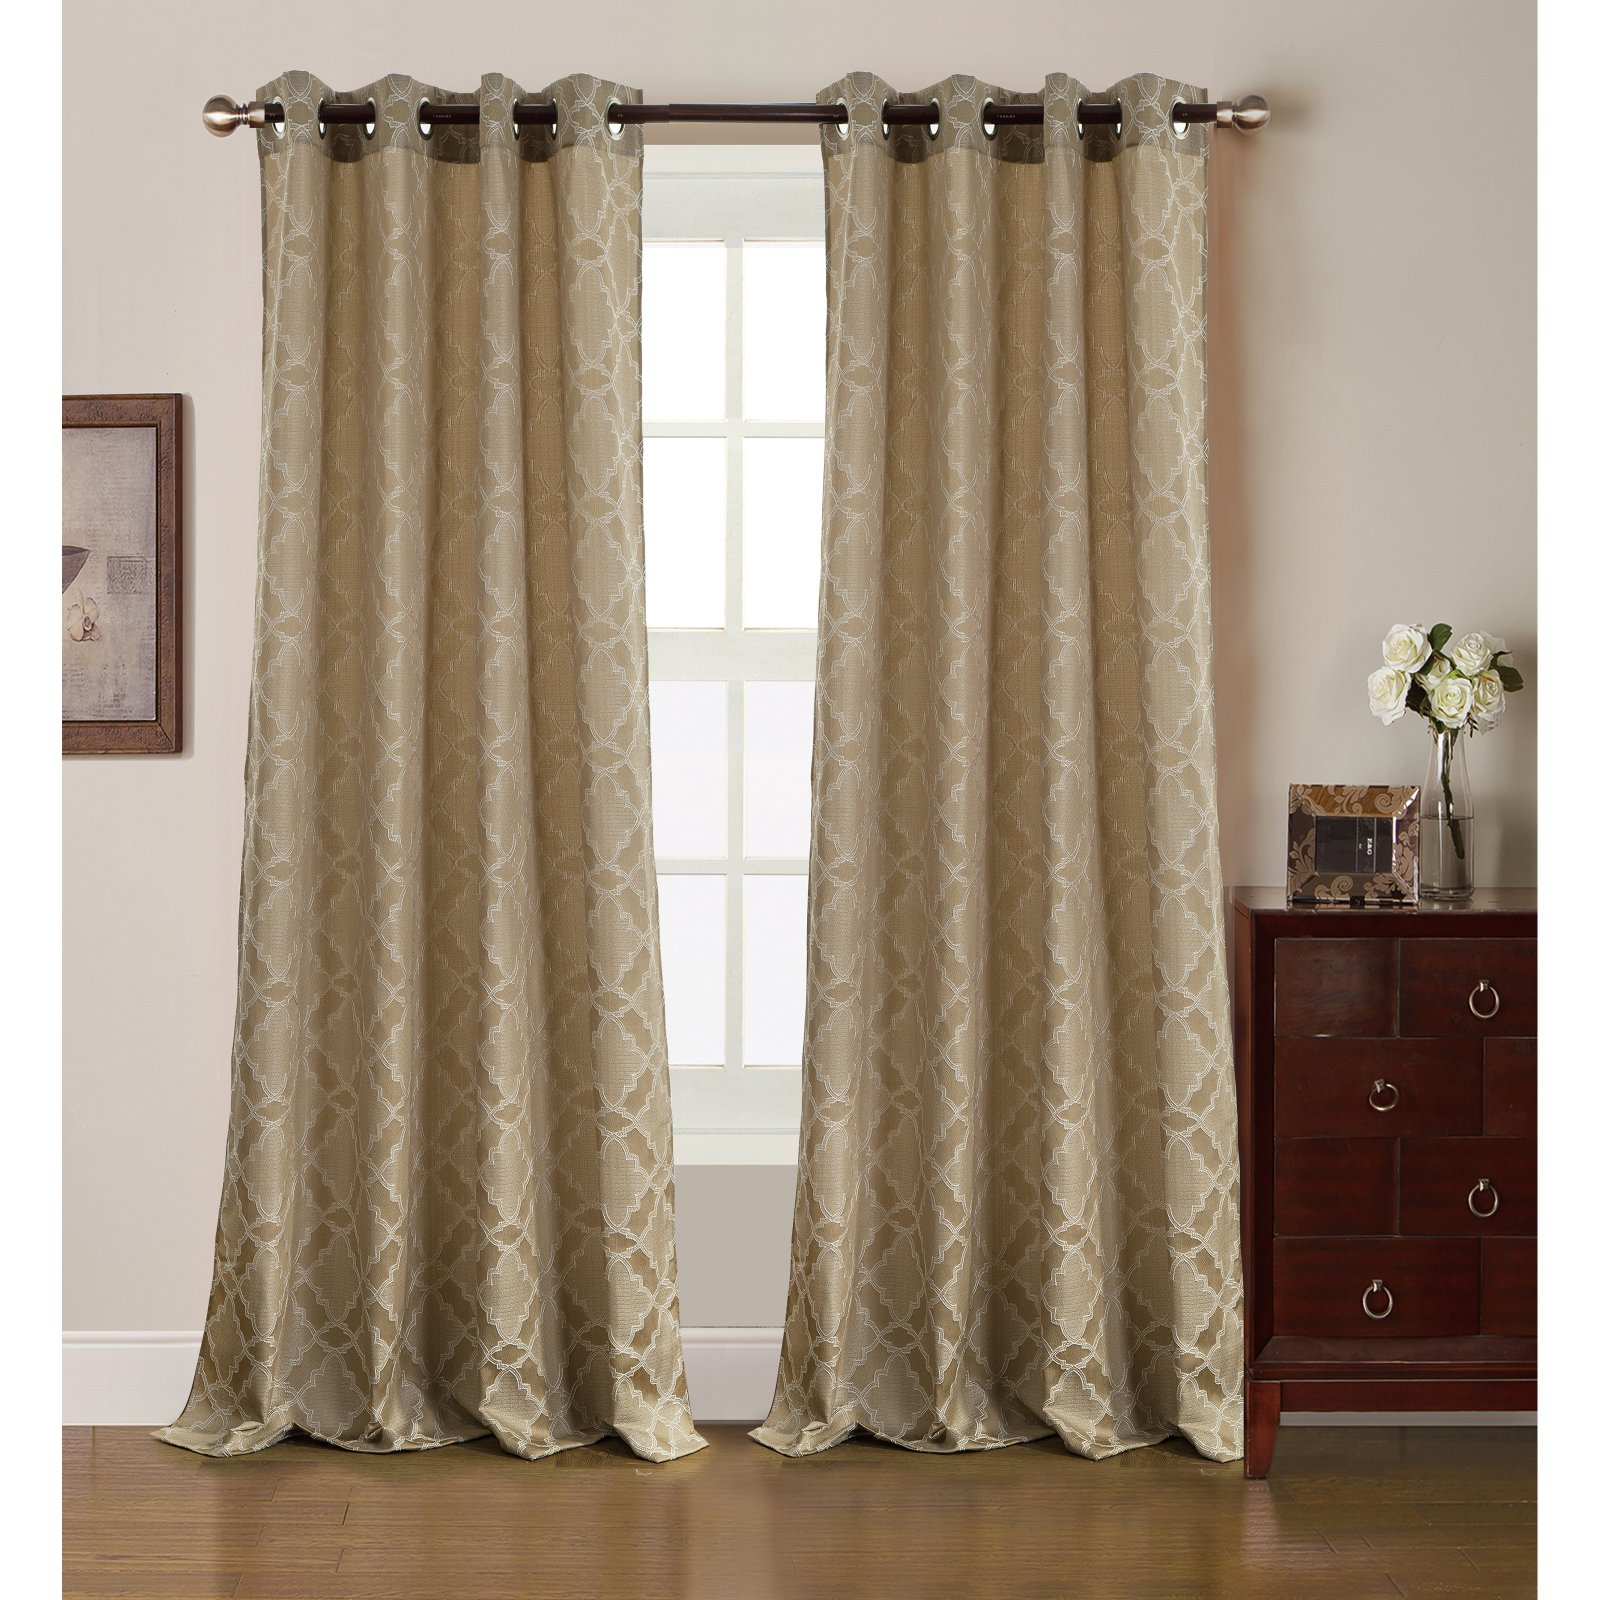 Rt Designers Collection Morgan Jacquard Grommet Curtain For Gracewood Hollow Tucakovic Energy Efficient Fabric Blackout Curtains (View 6 of 20)